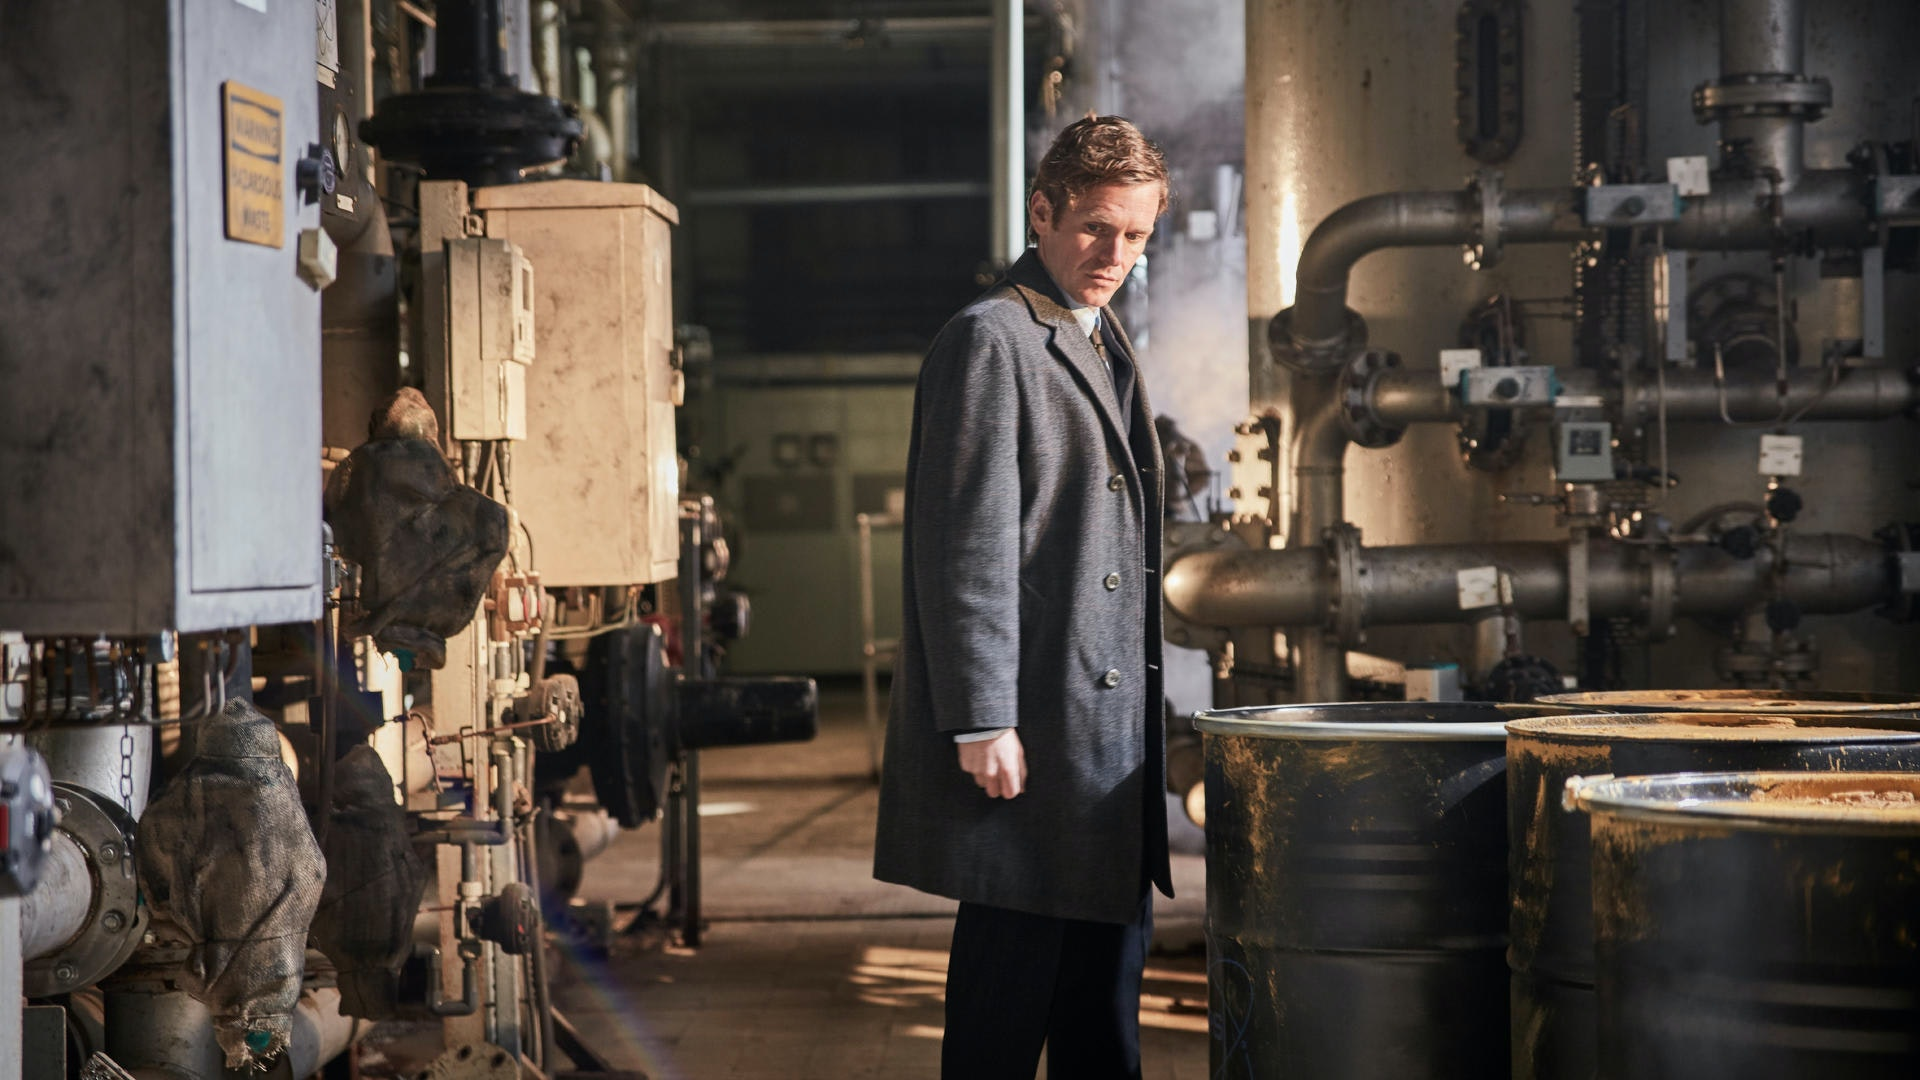 Endeavour-S04E04-9bfc767afef18d00beed36aaa036eb24-full